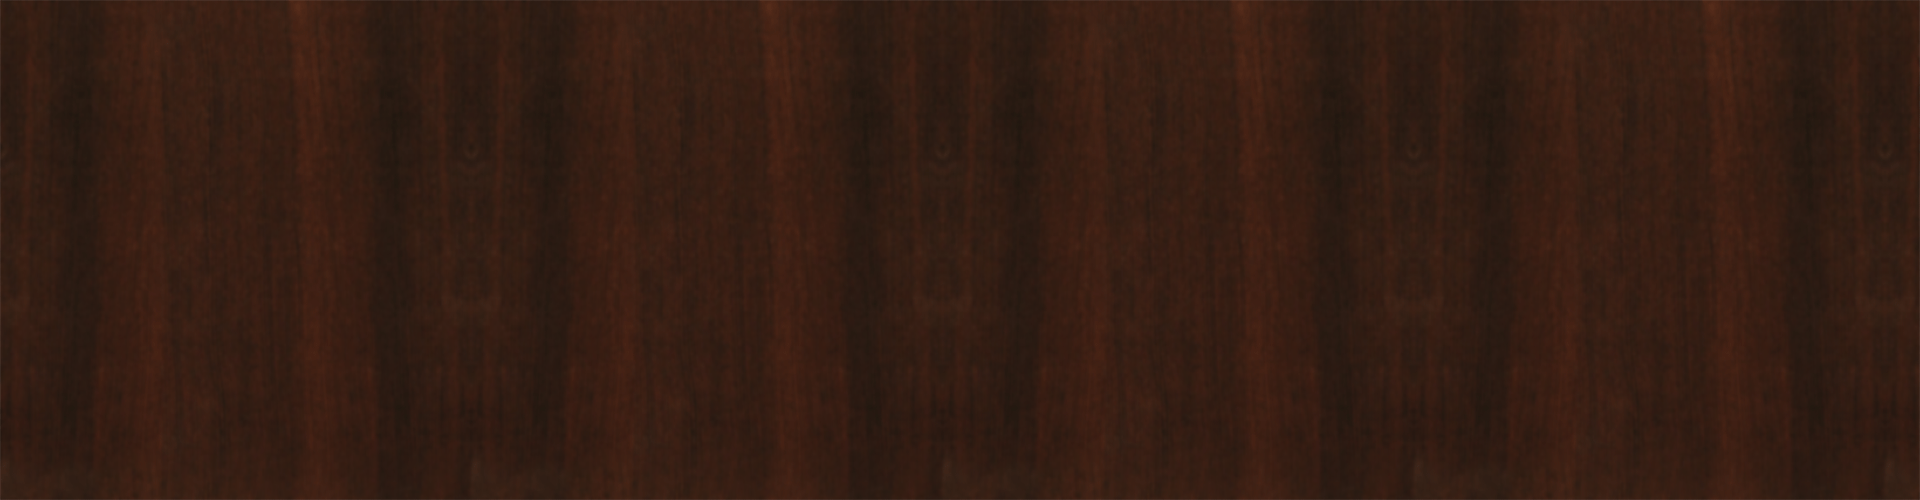 dark_wood_background1